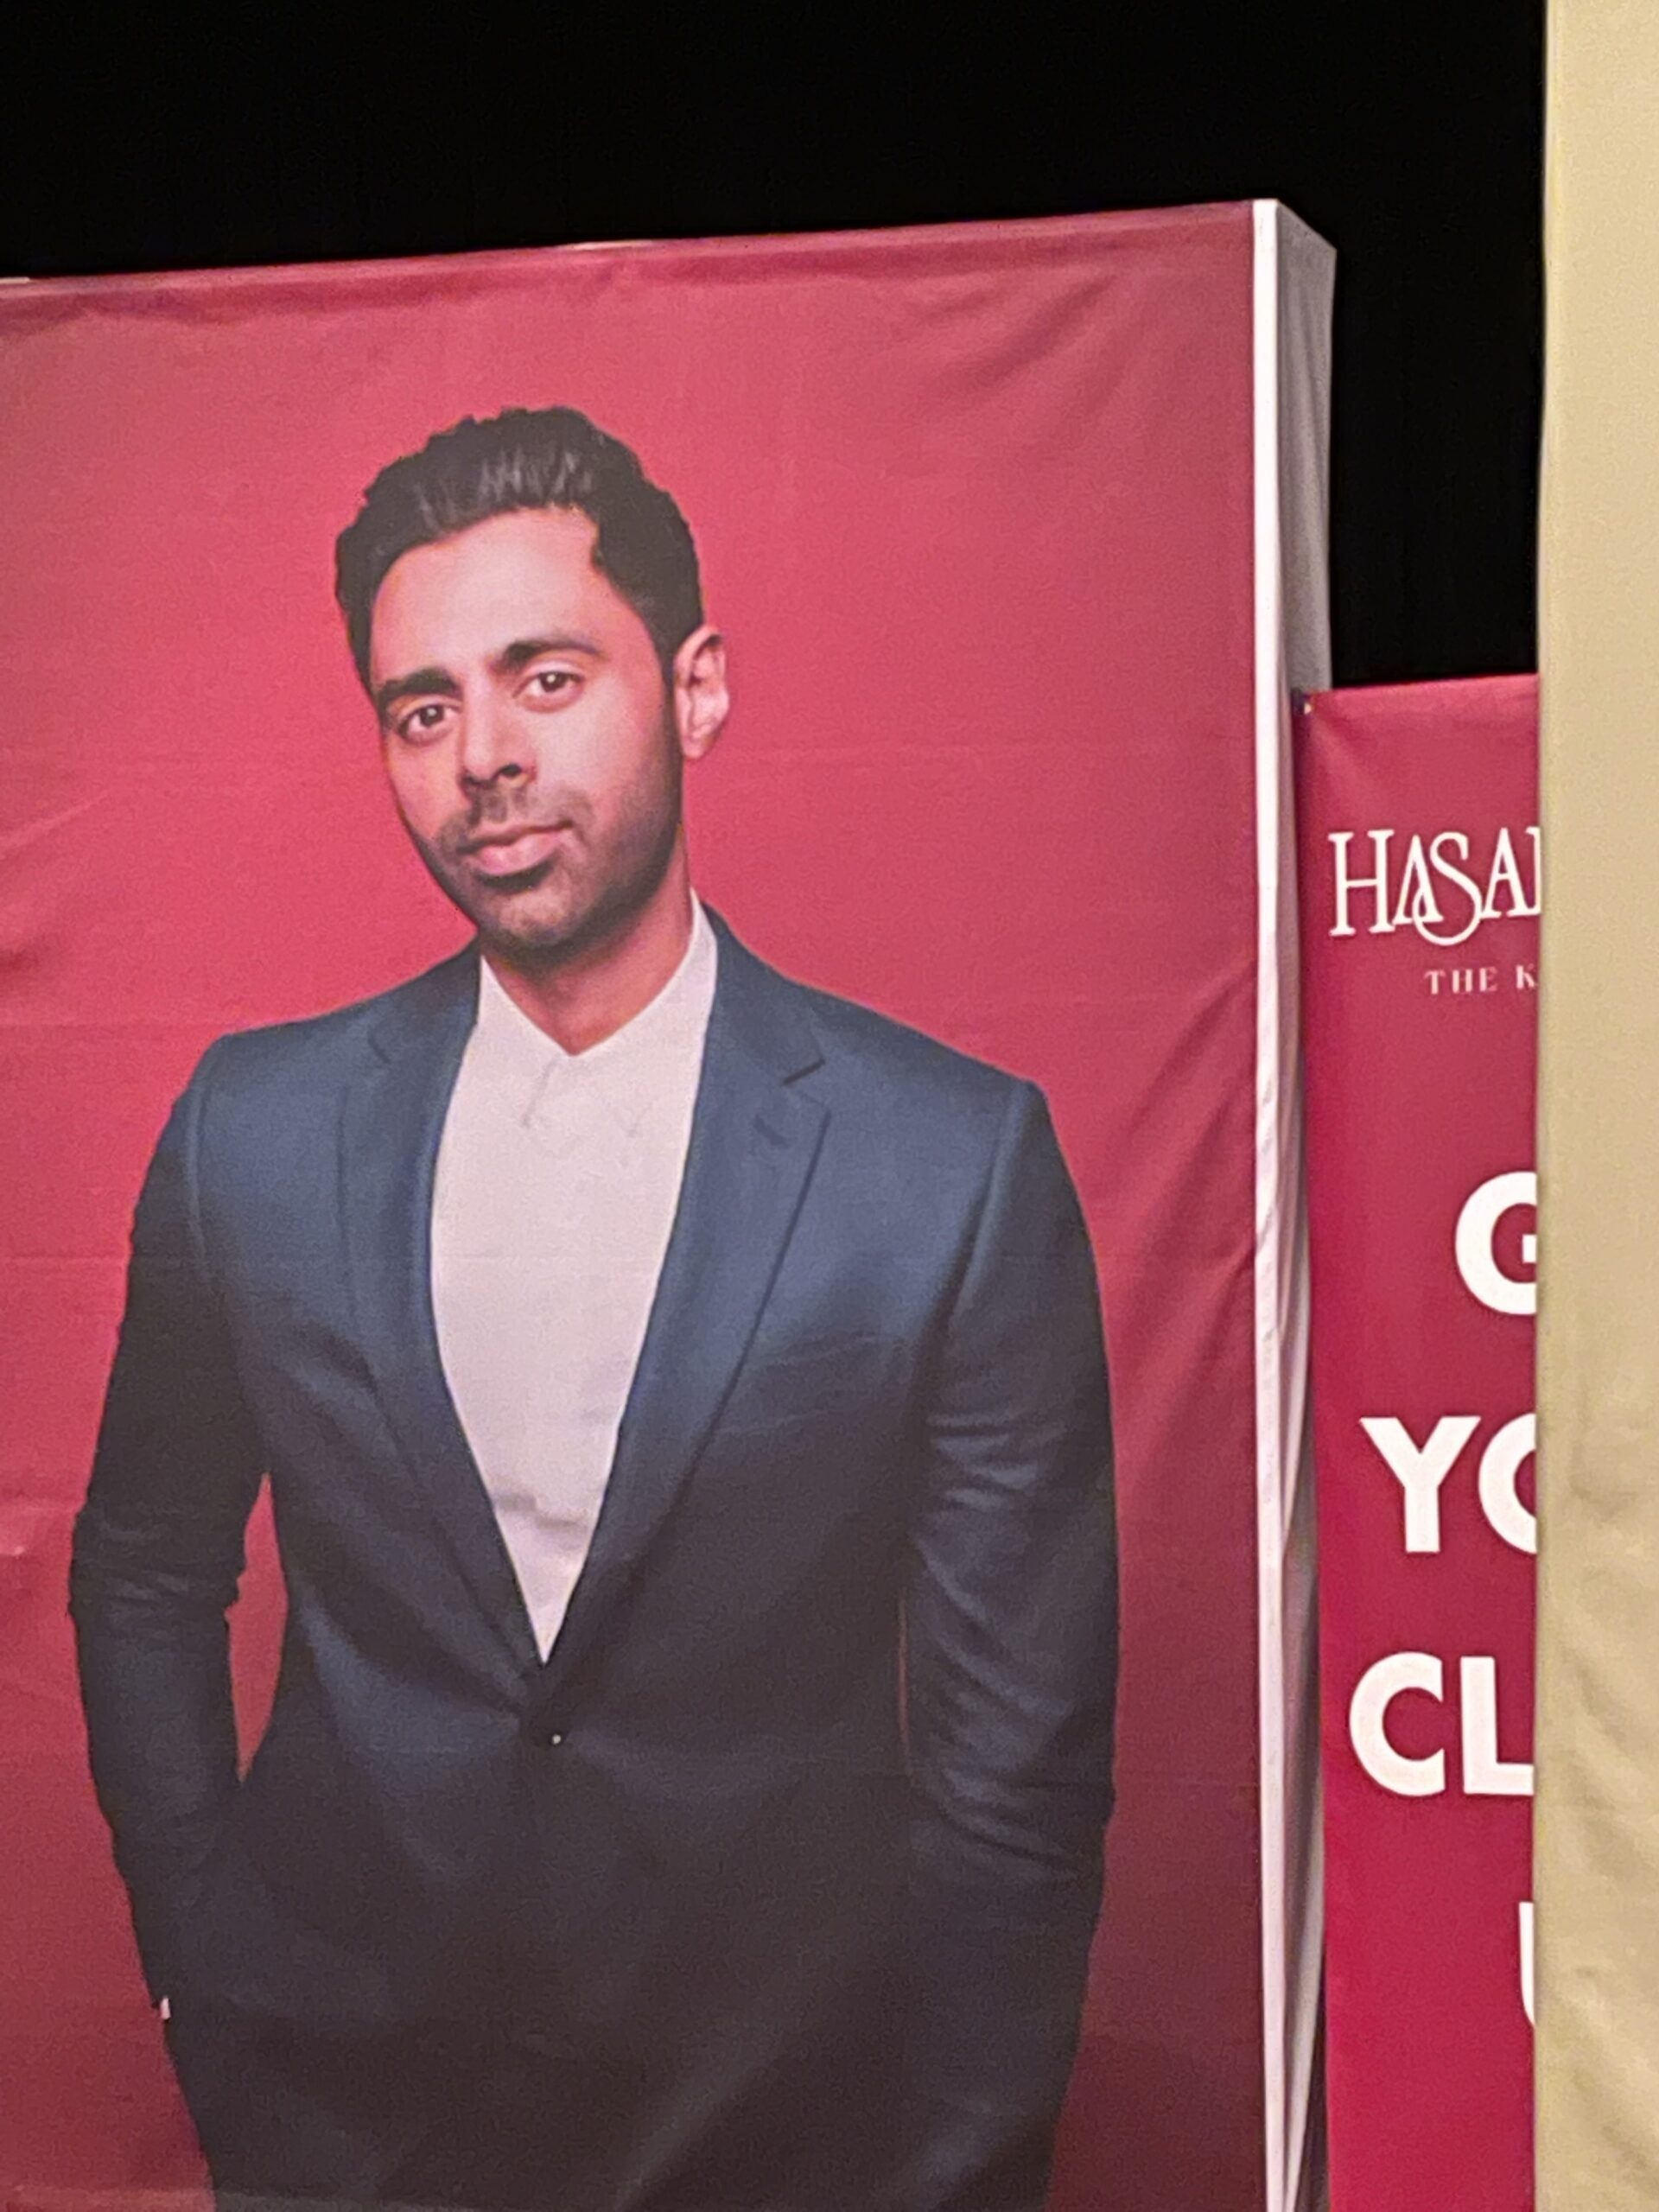 A poster of Hasan Minhaj shows the comedian wearing a dark suit against a bright red backdrop.